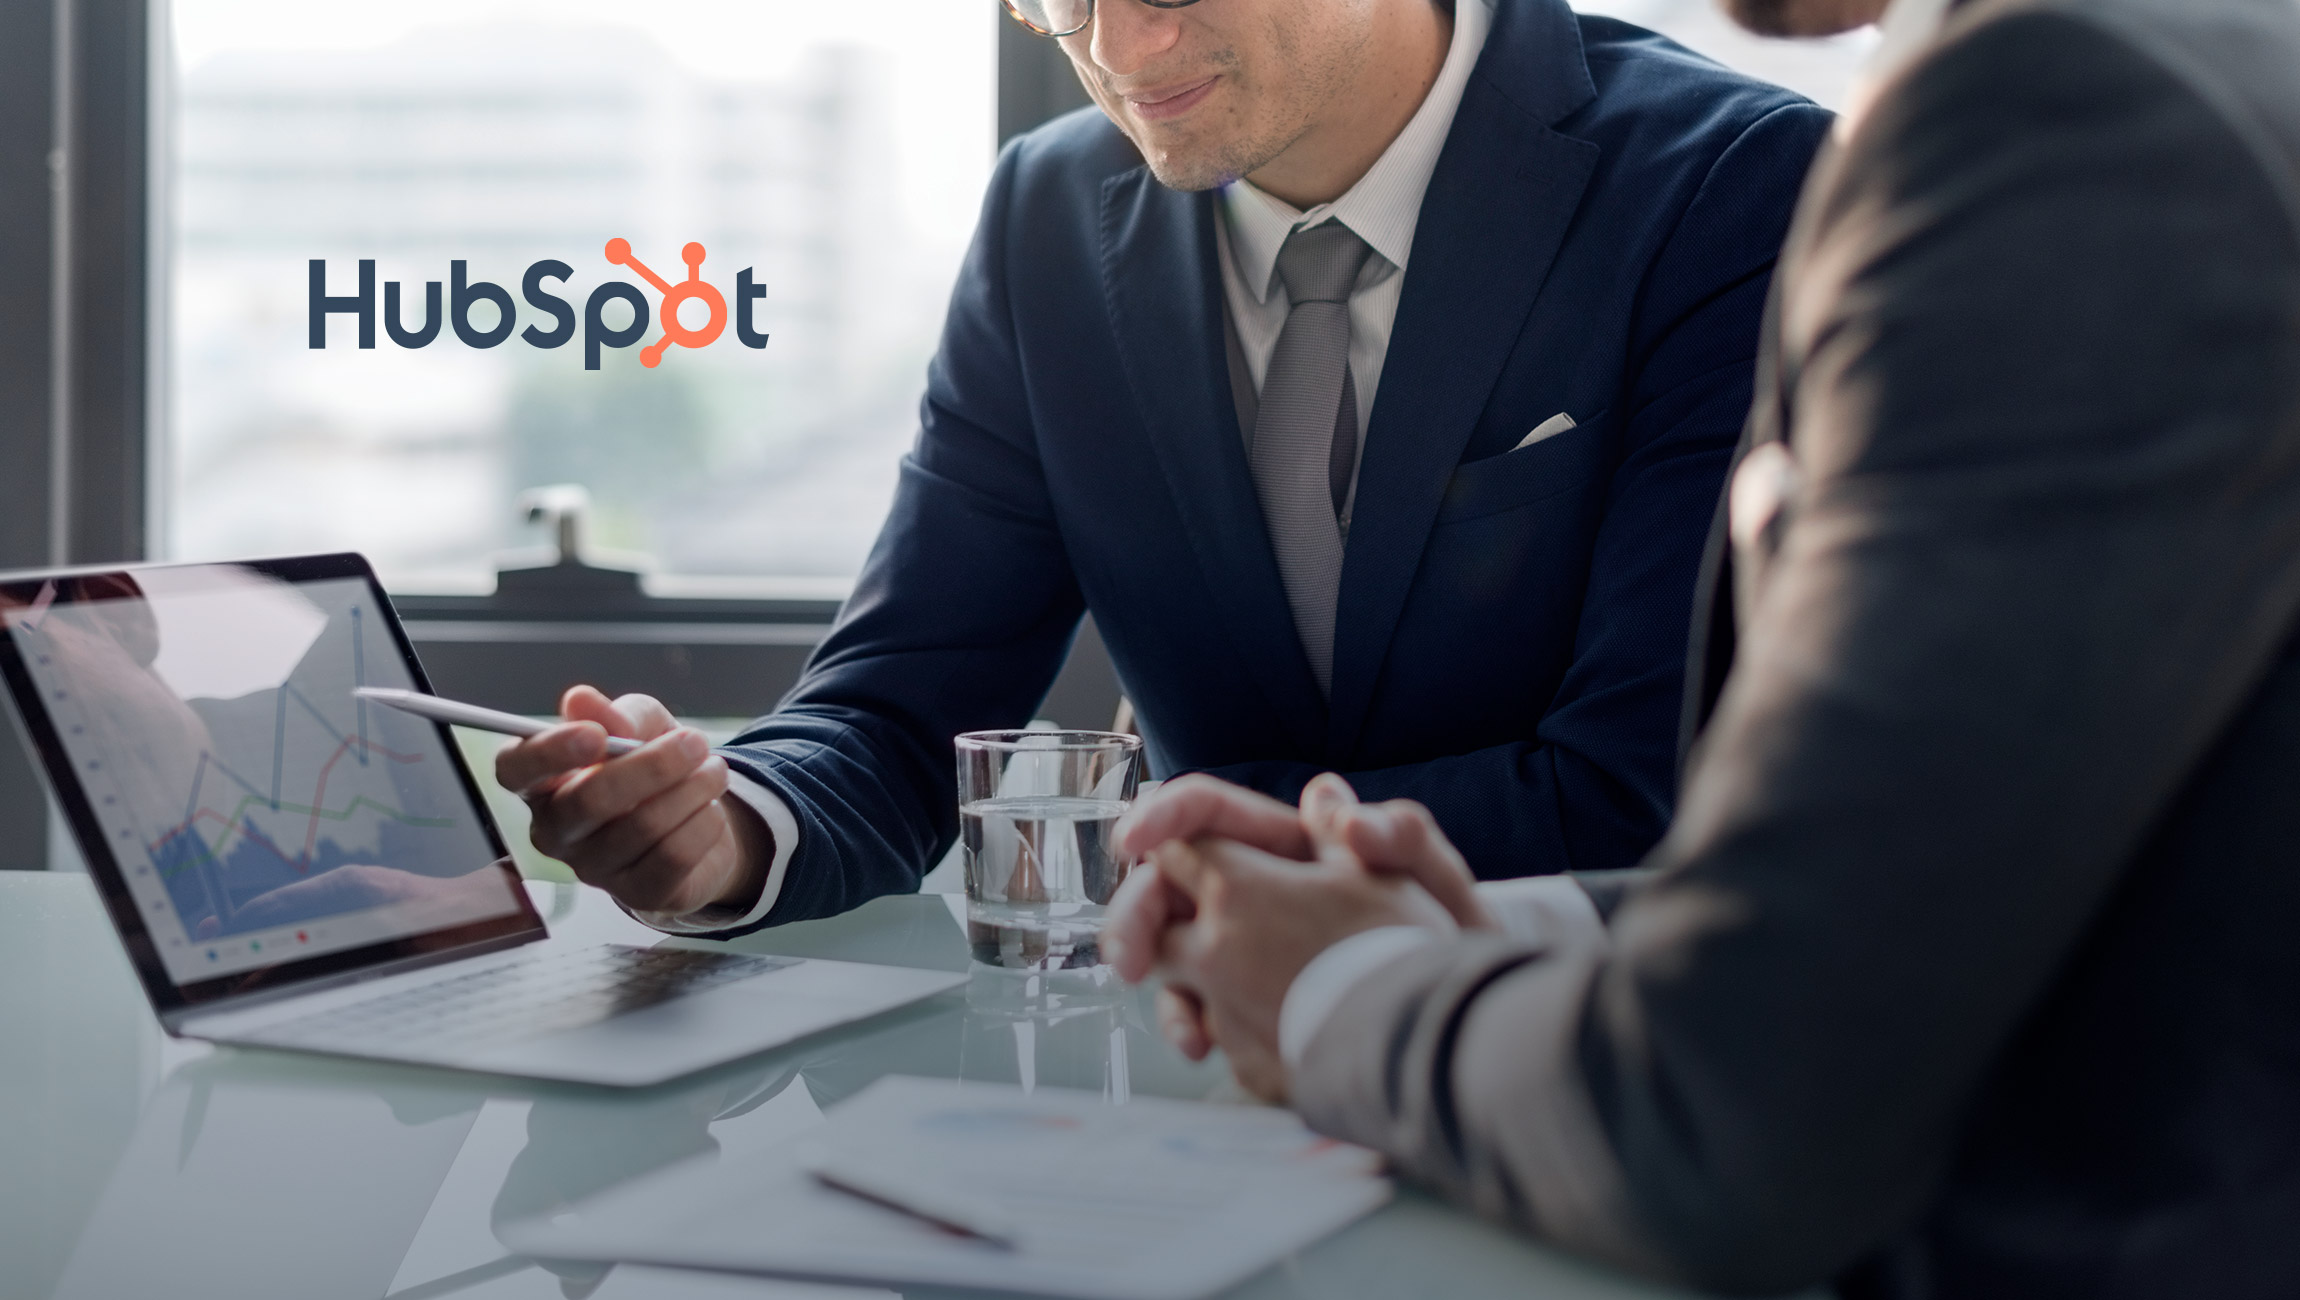 HubSpot Expands Functionality of its Growth Platform With New Features Announced at INBOUND 2019